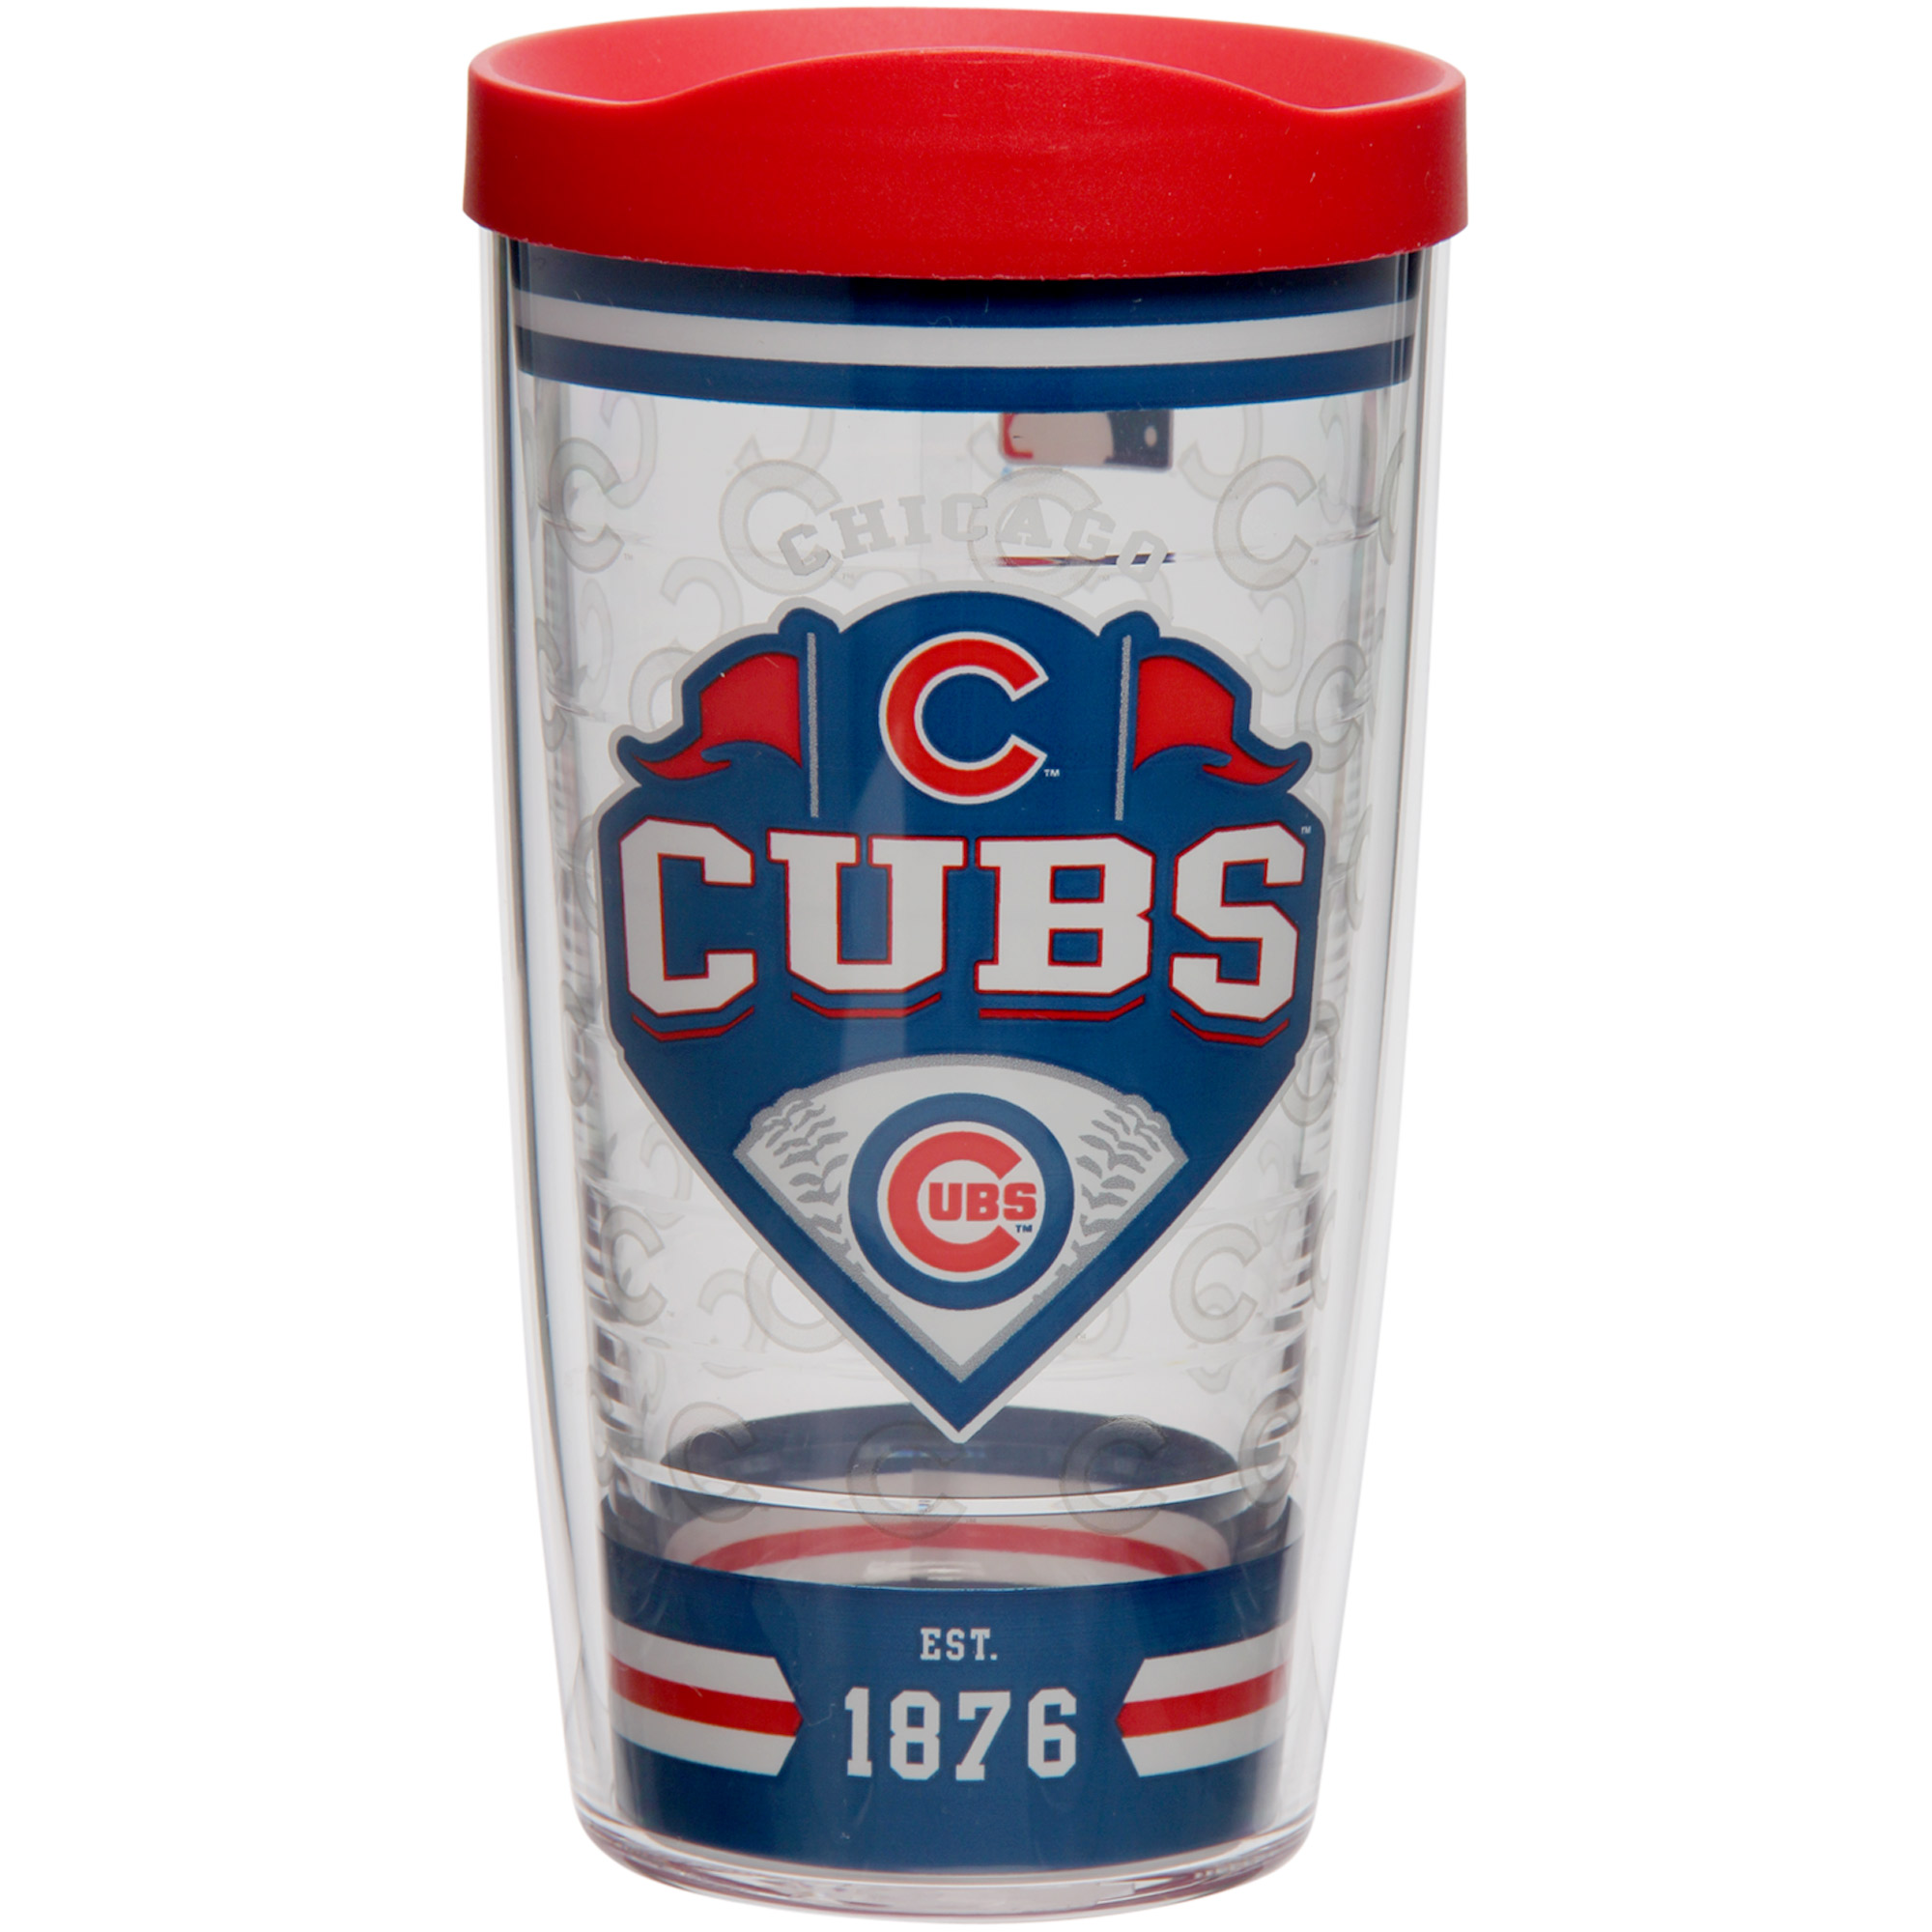 Chicago Cubs Tervis 16oz. Classic Wrap Tumbler with Lid - No Size